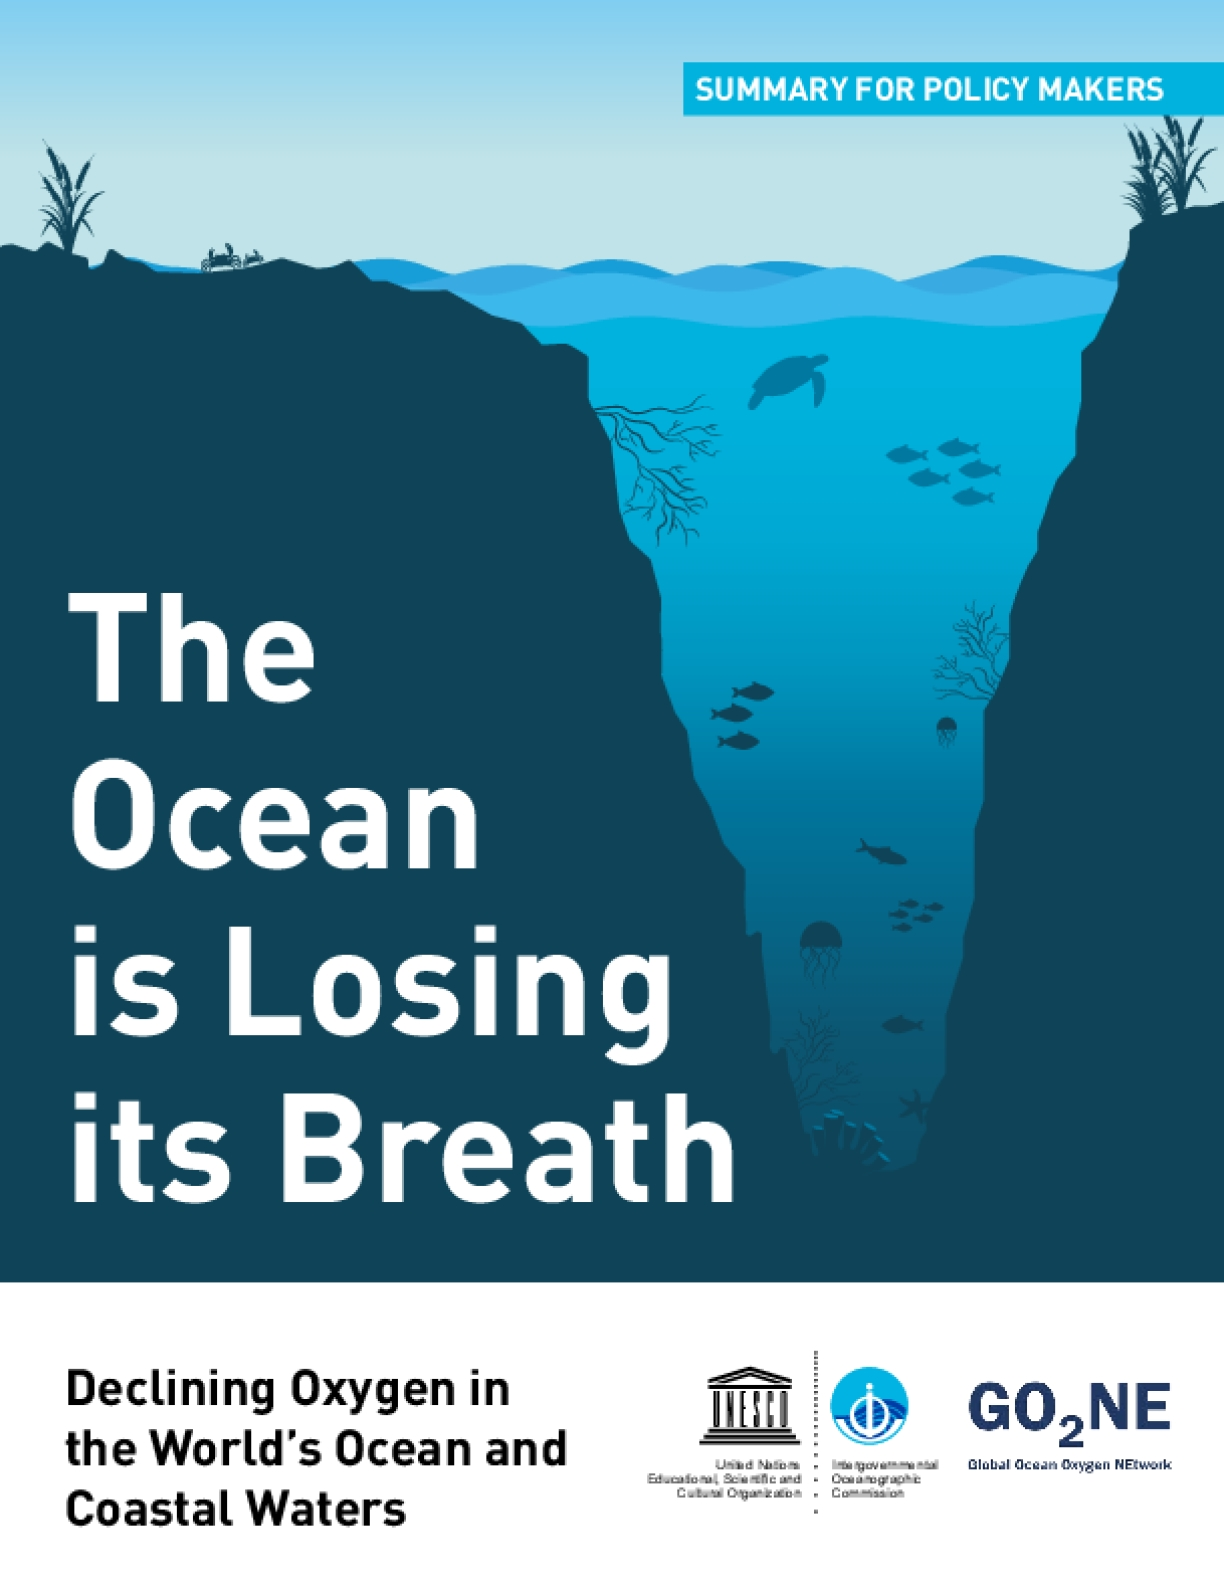 The Ocean is Losing its Breath: Declining Oxygen in the World's Ocean and Coastal Waters